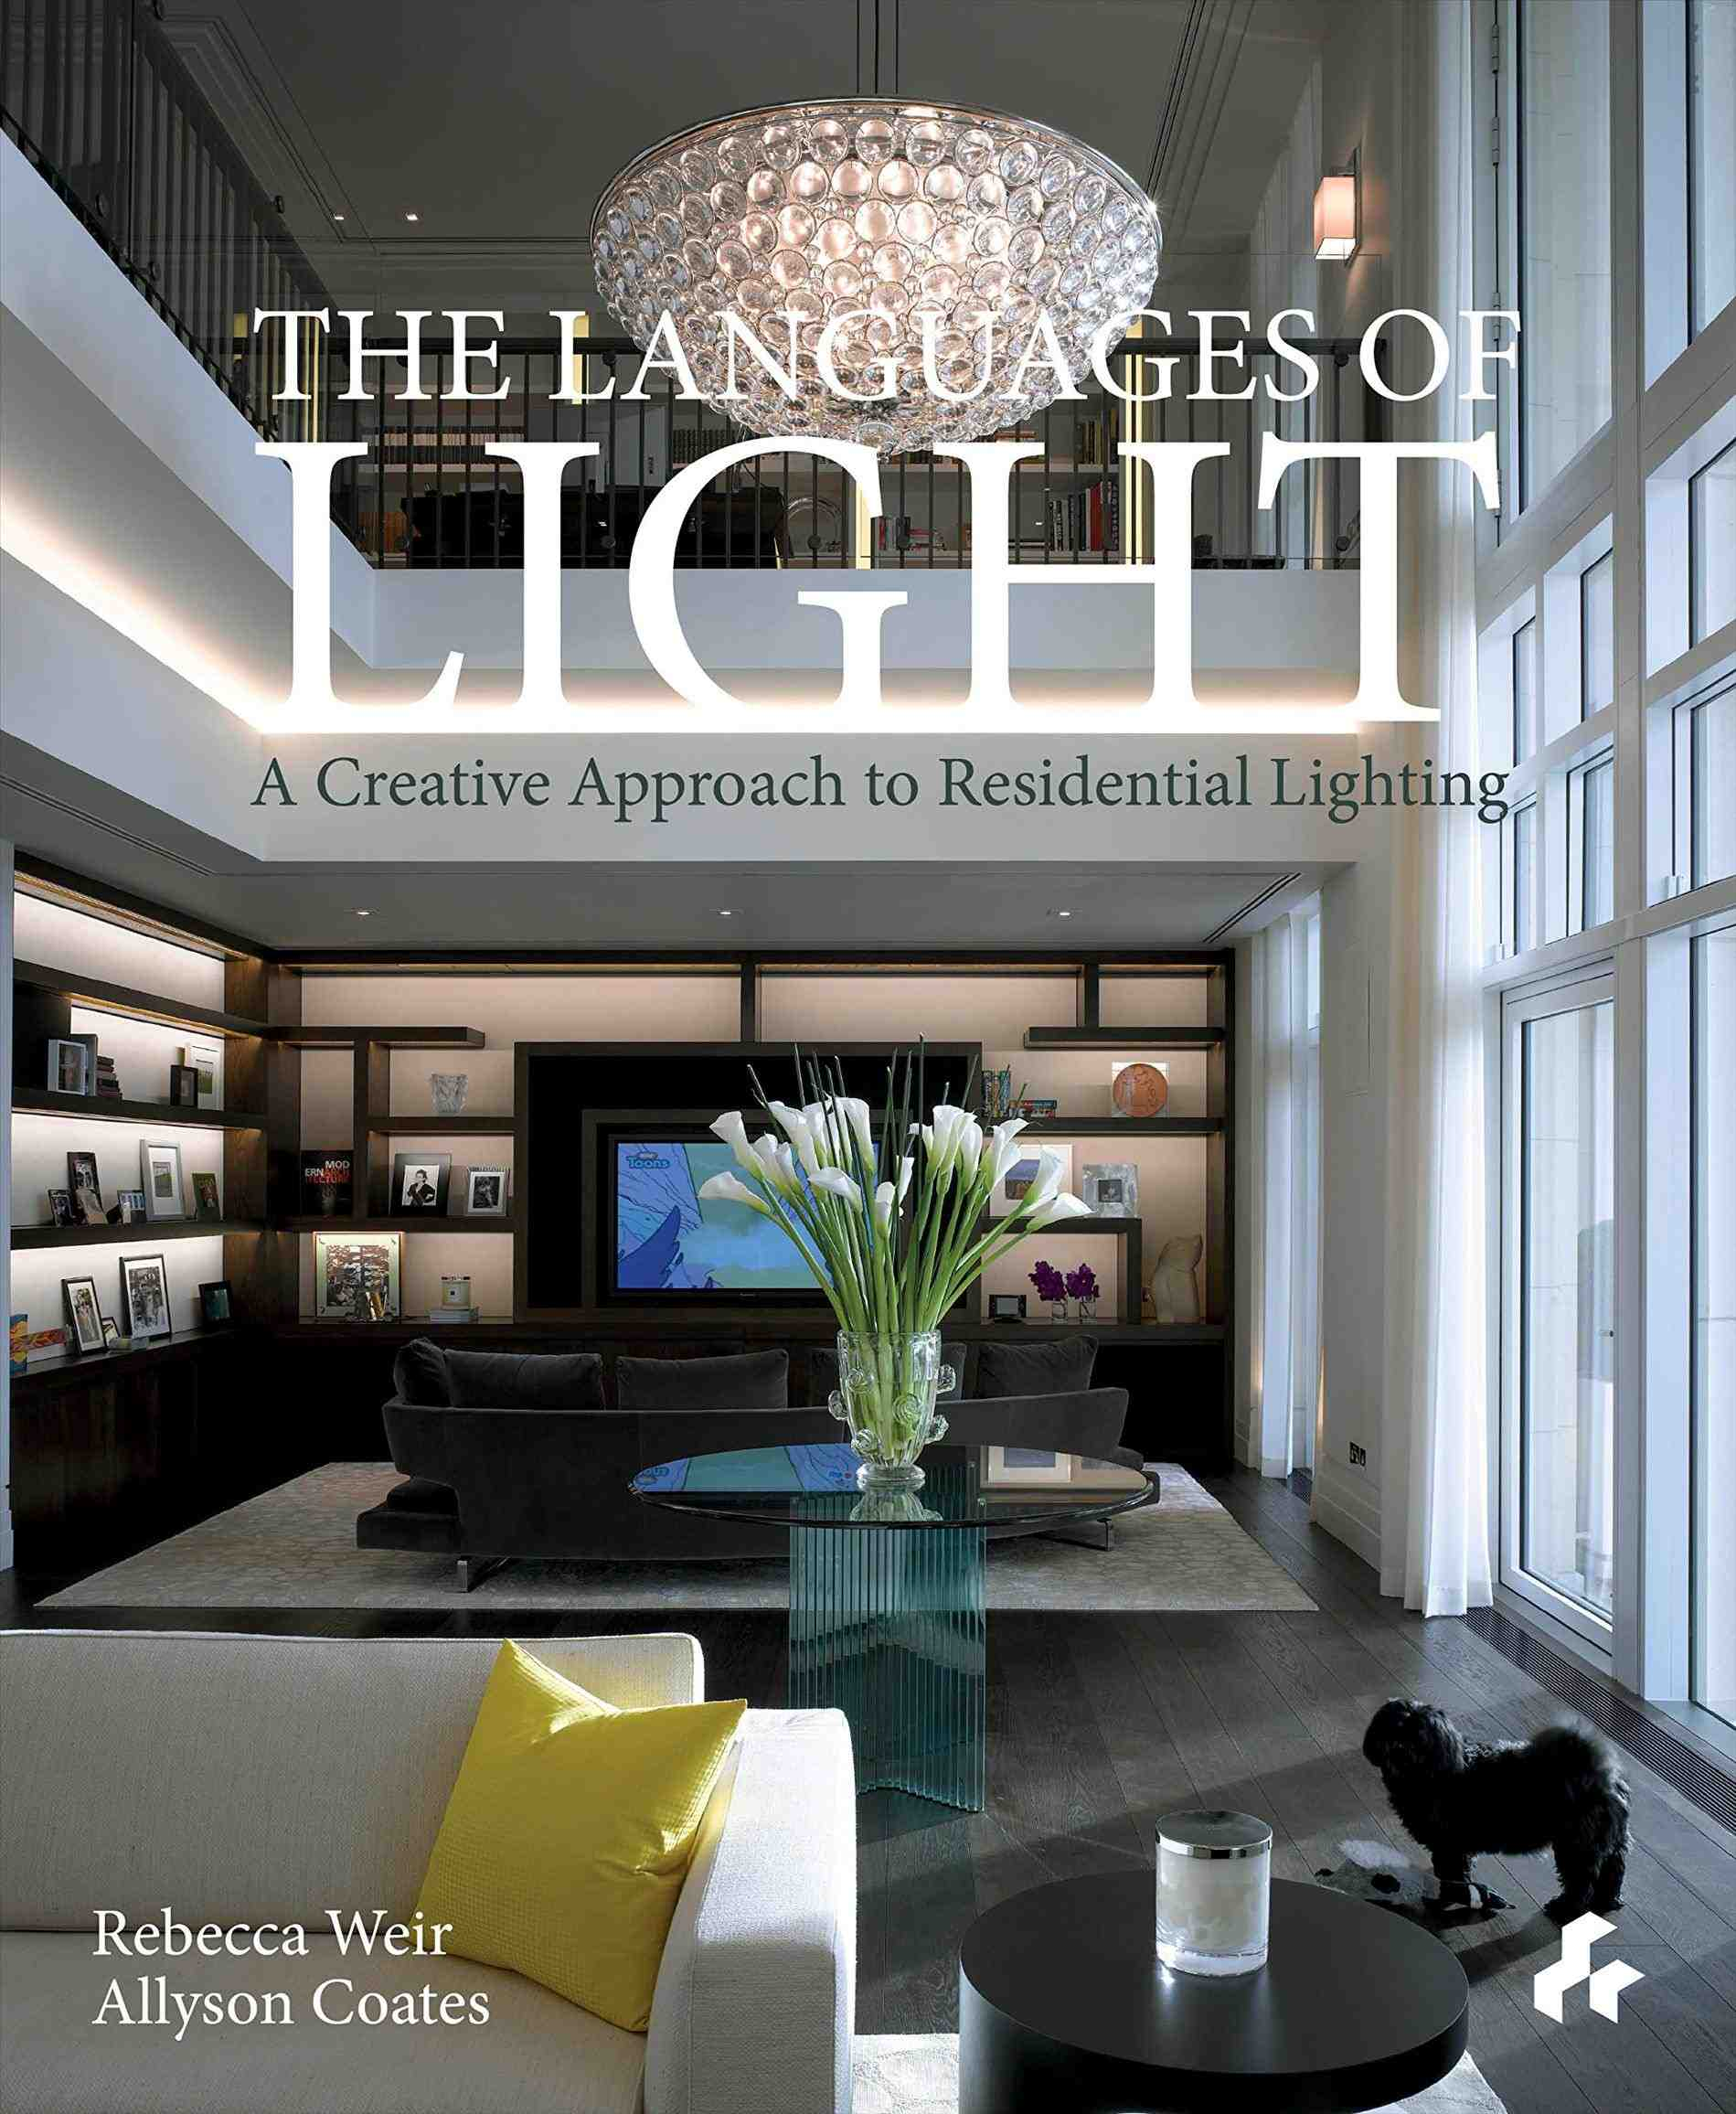 U Home Interior Design Forum: The Languages Of Light: A Creative Approach To Residential